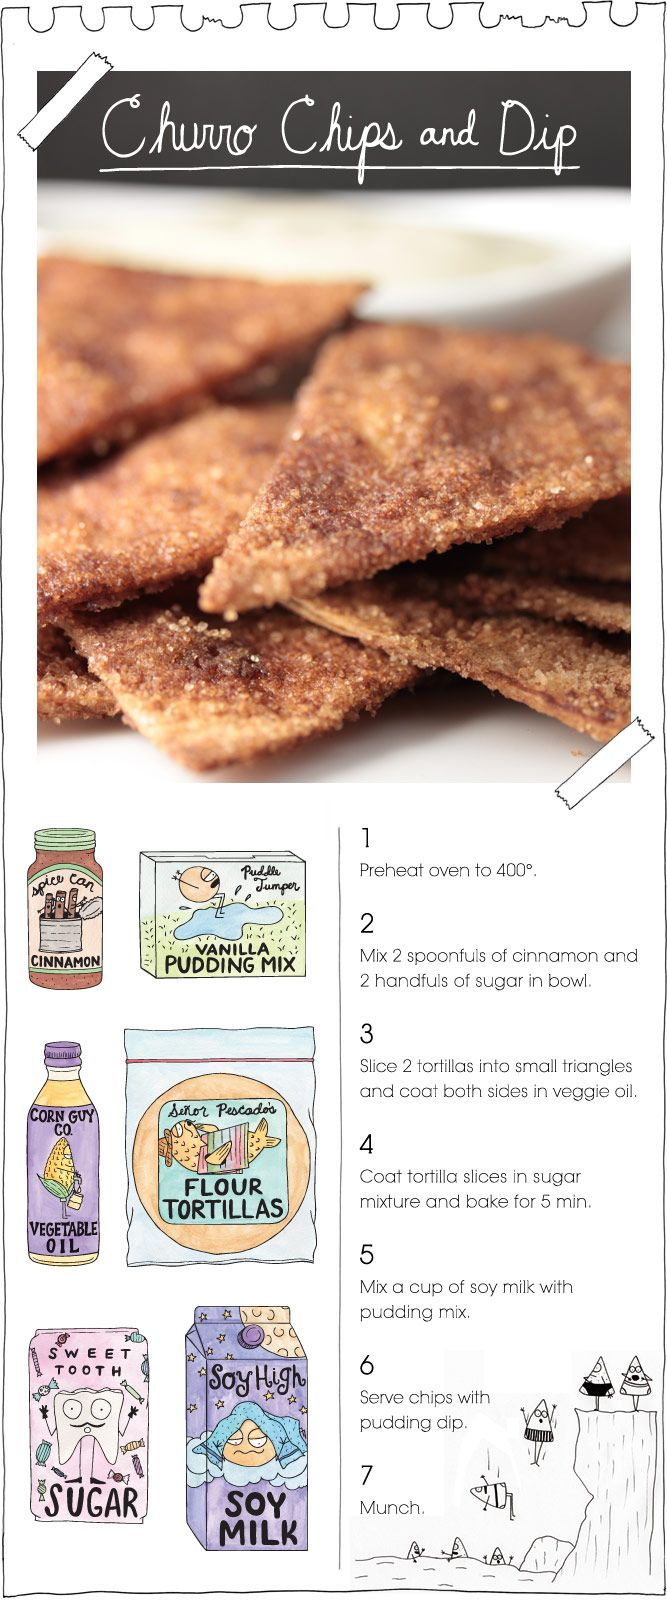 Churro chips - yum!!Desserts, Churros Chips, Cheese Dips, Dips Recipe, Vegan Stoner, Chips Dips, Chip Dips, Sweets Dips, Vegan Food